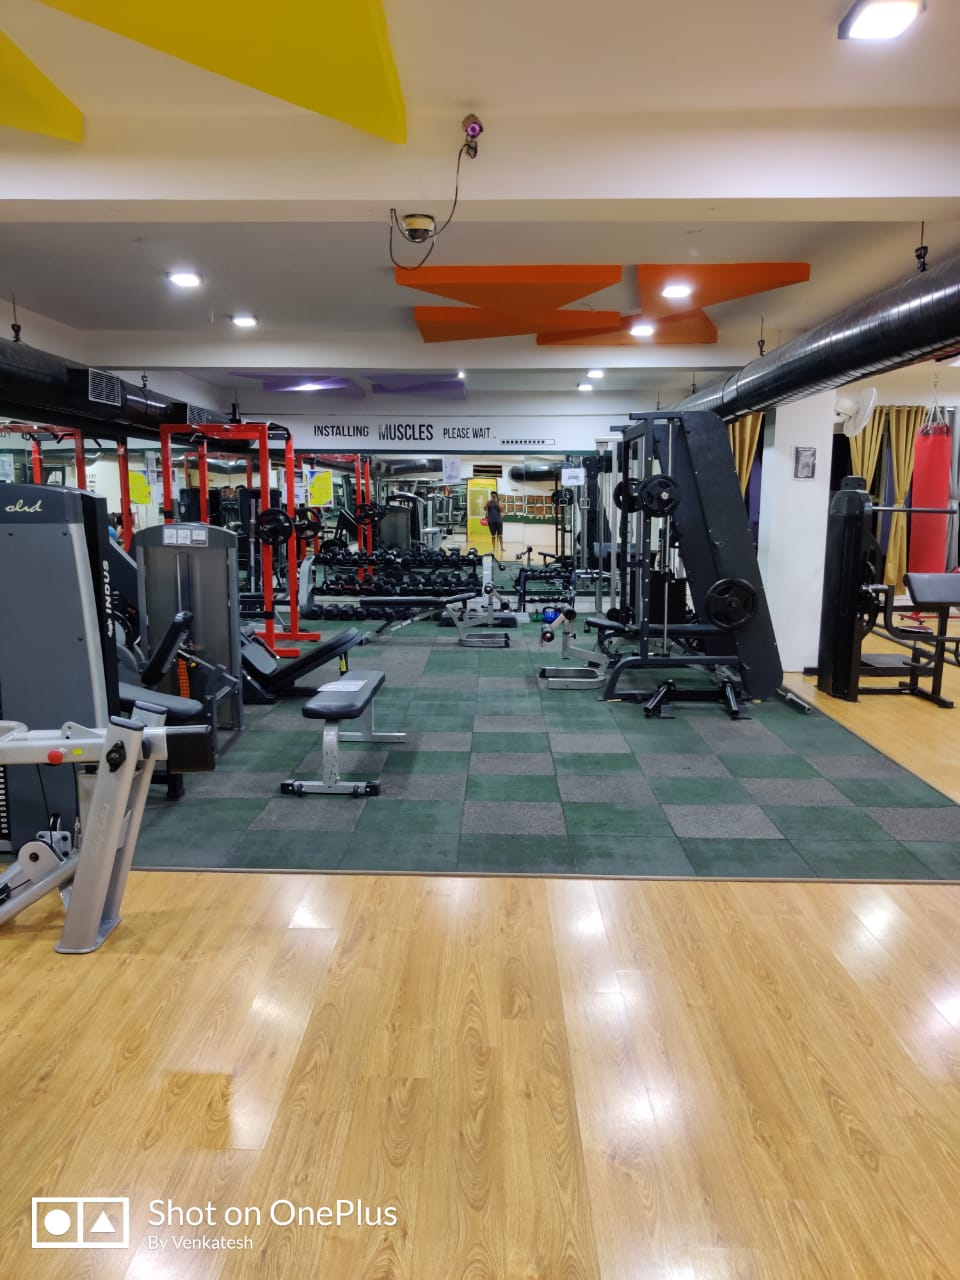 Profitable Fitness Studio and Badminton Court for Partexit or Sale in Chennai